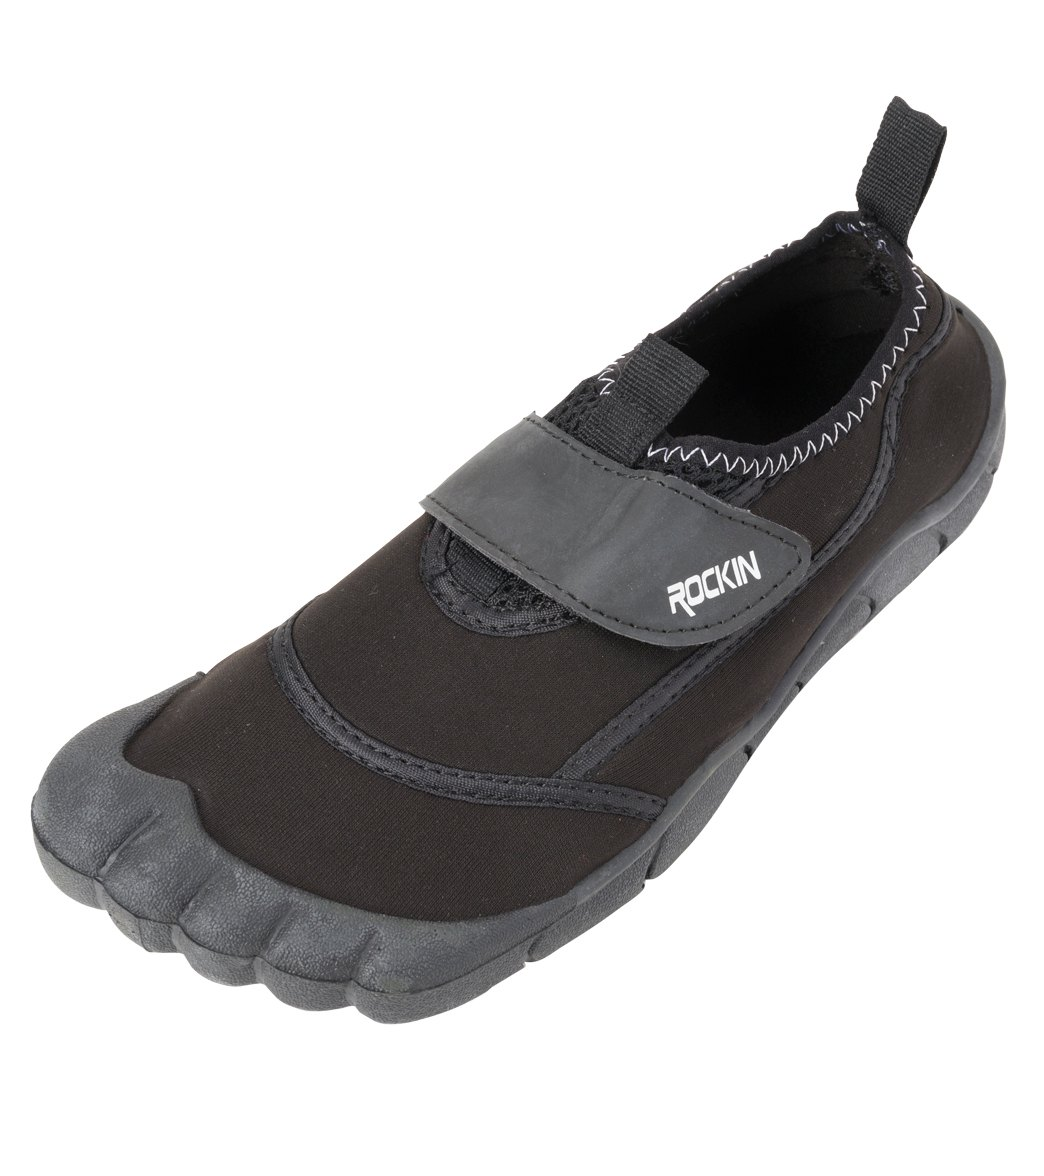 Best Water Shoes For Snorkeling Uk